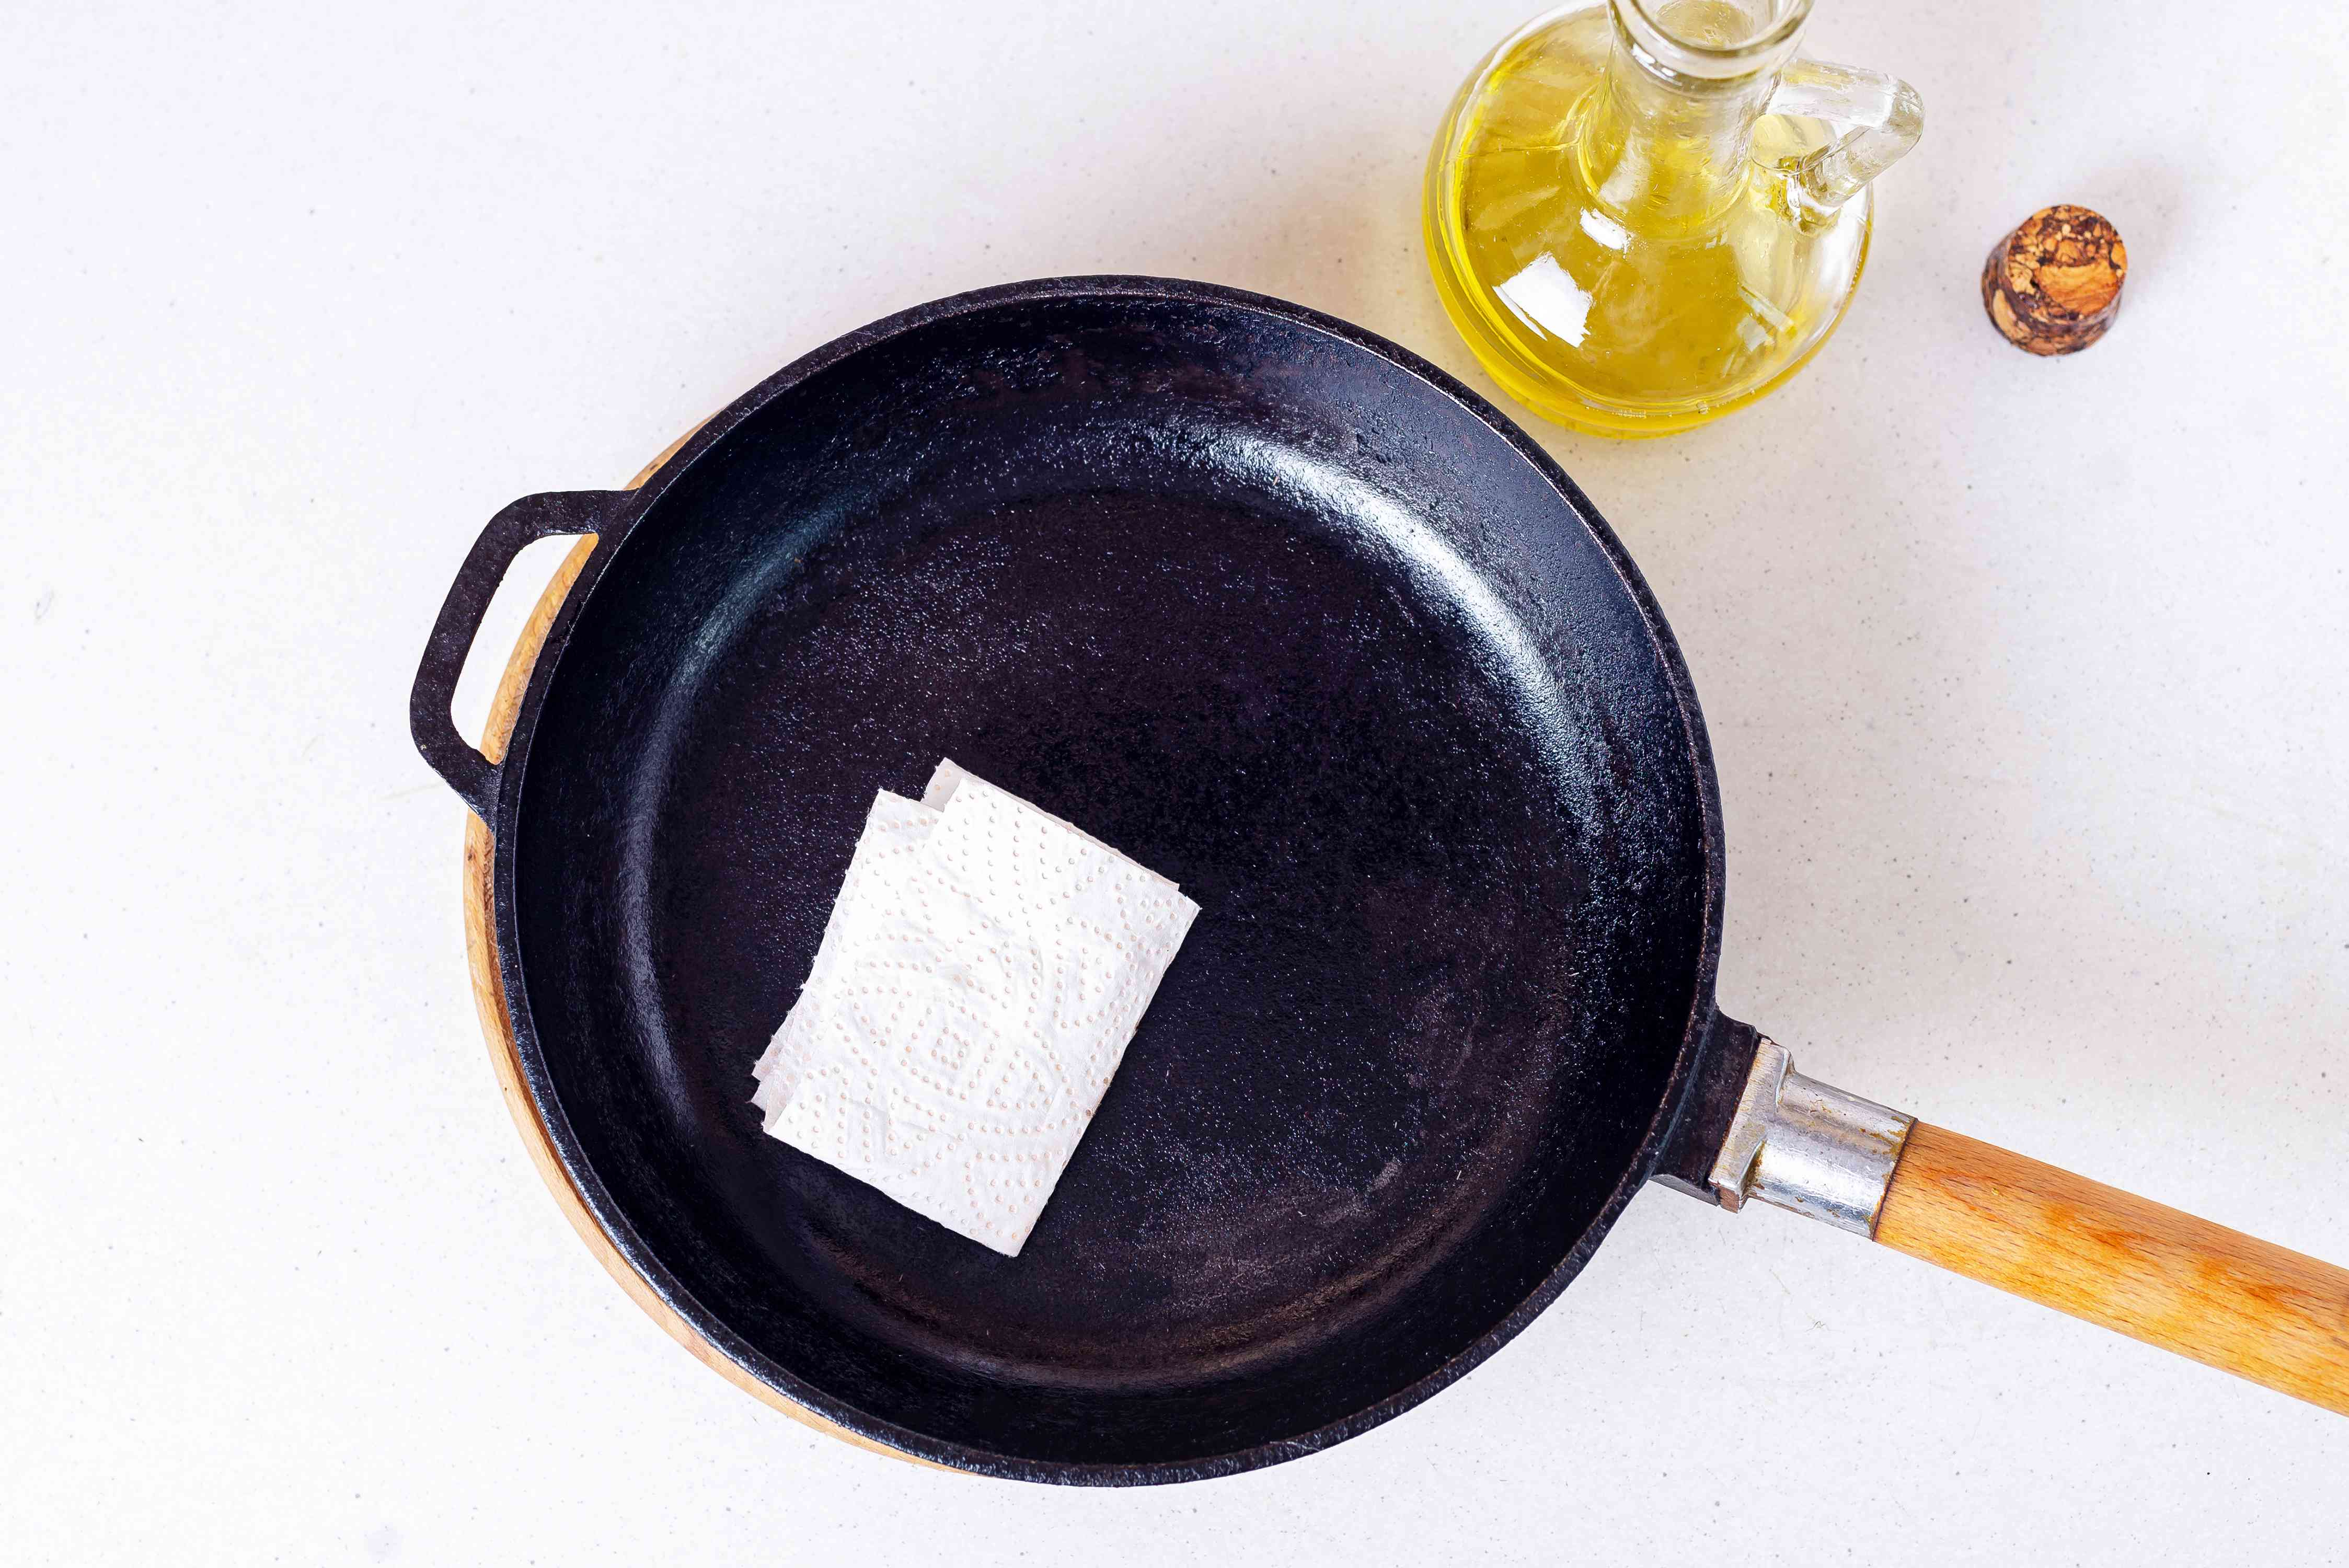 Cast iron pan re-seasoned with vegetable oil and white paper towel